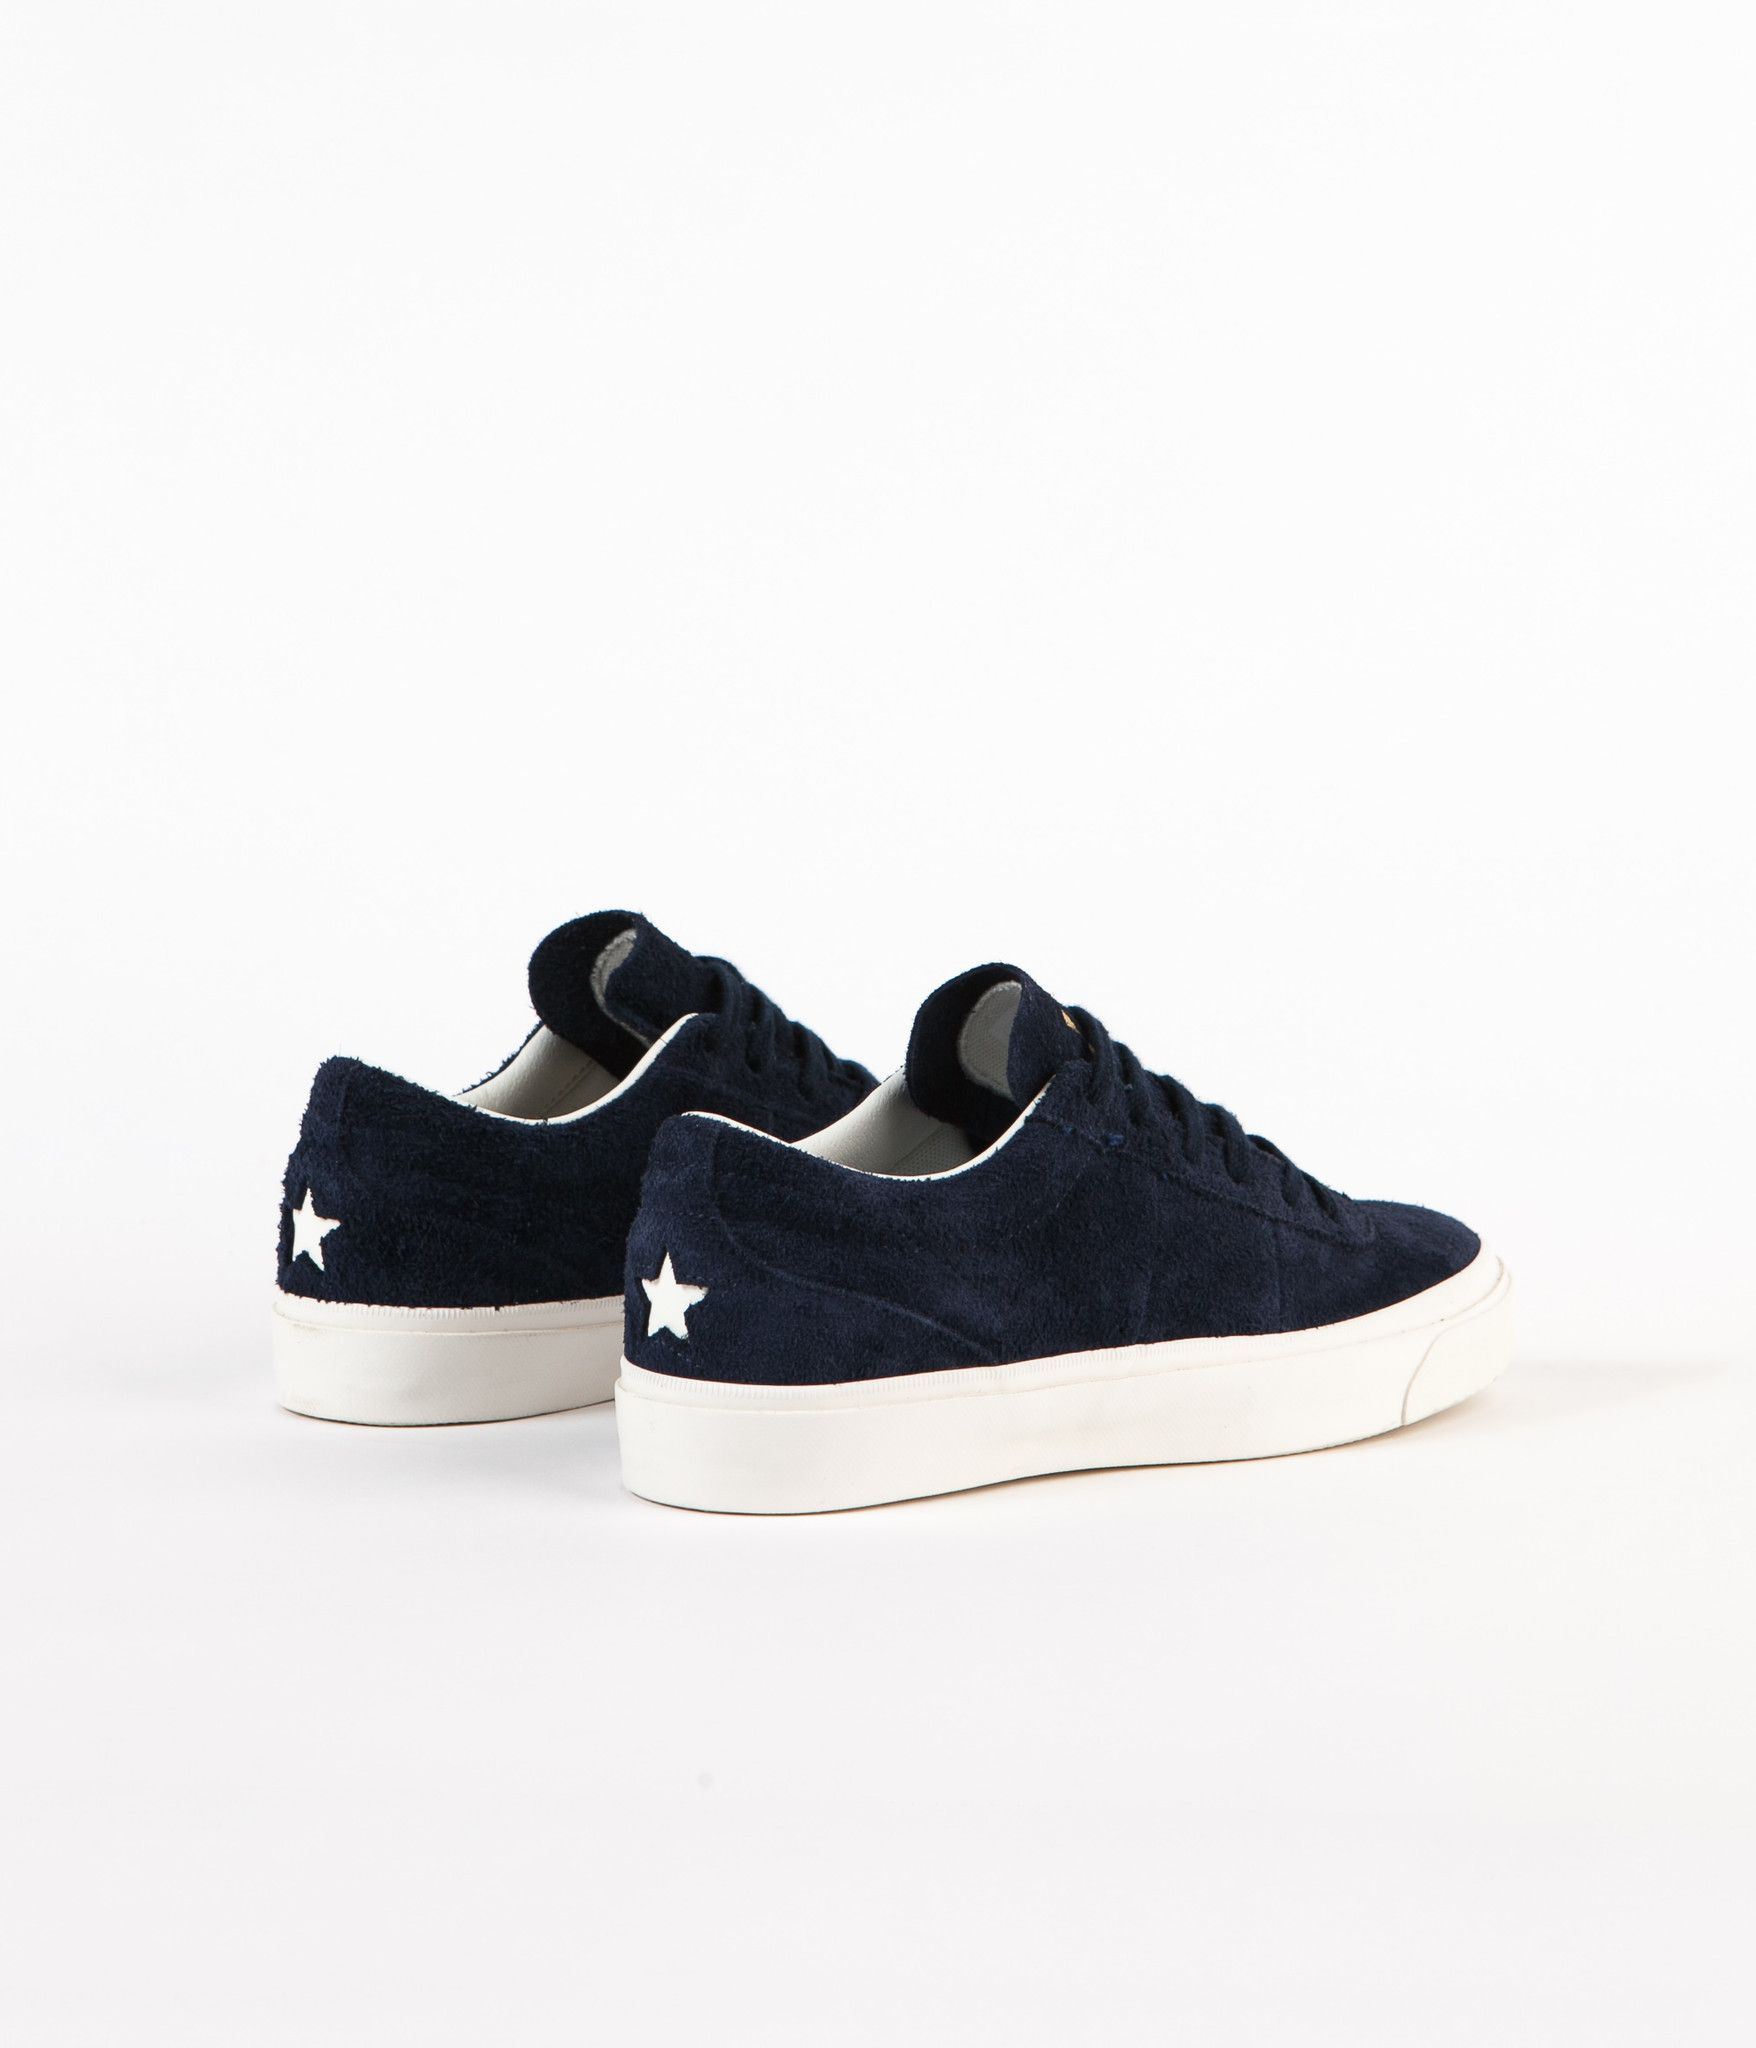 3a14358265cc Converse One Star Ox CC Sage Elsesser Shoes - Obsidian   Obsidian   Egret